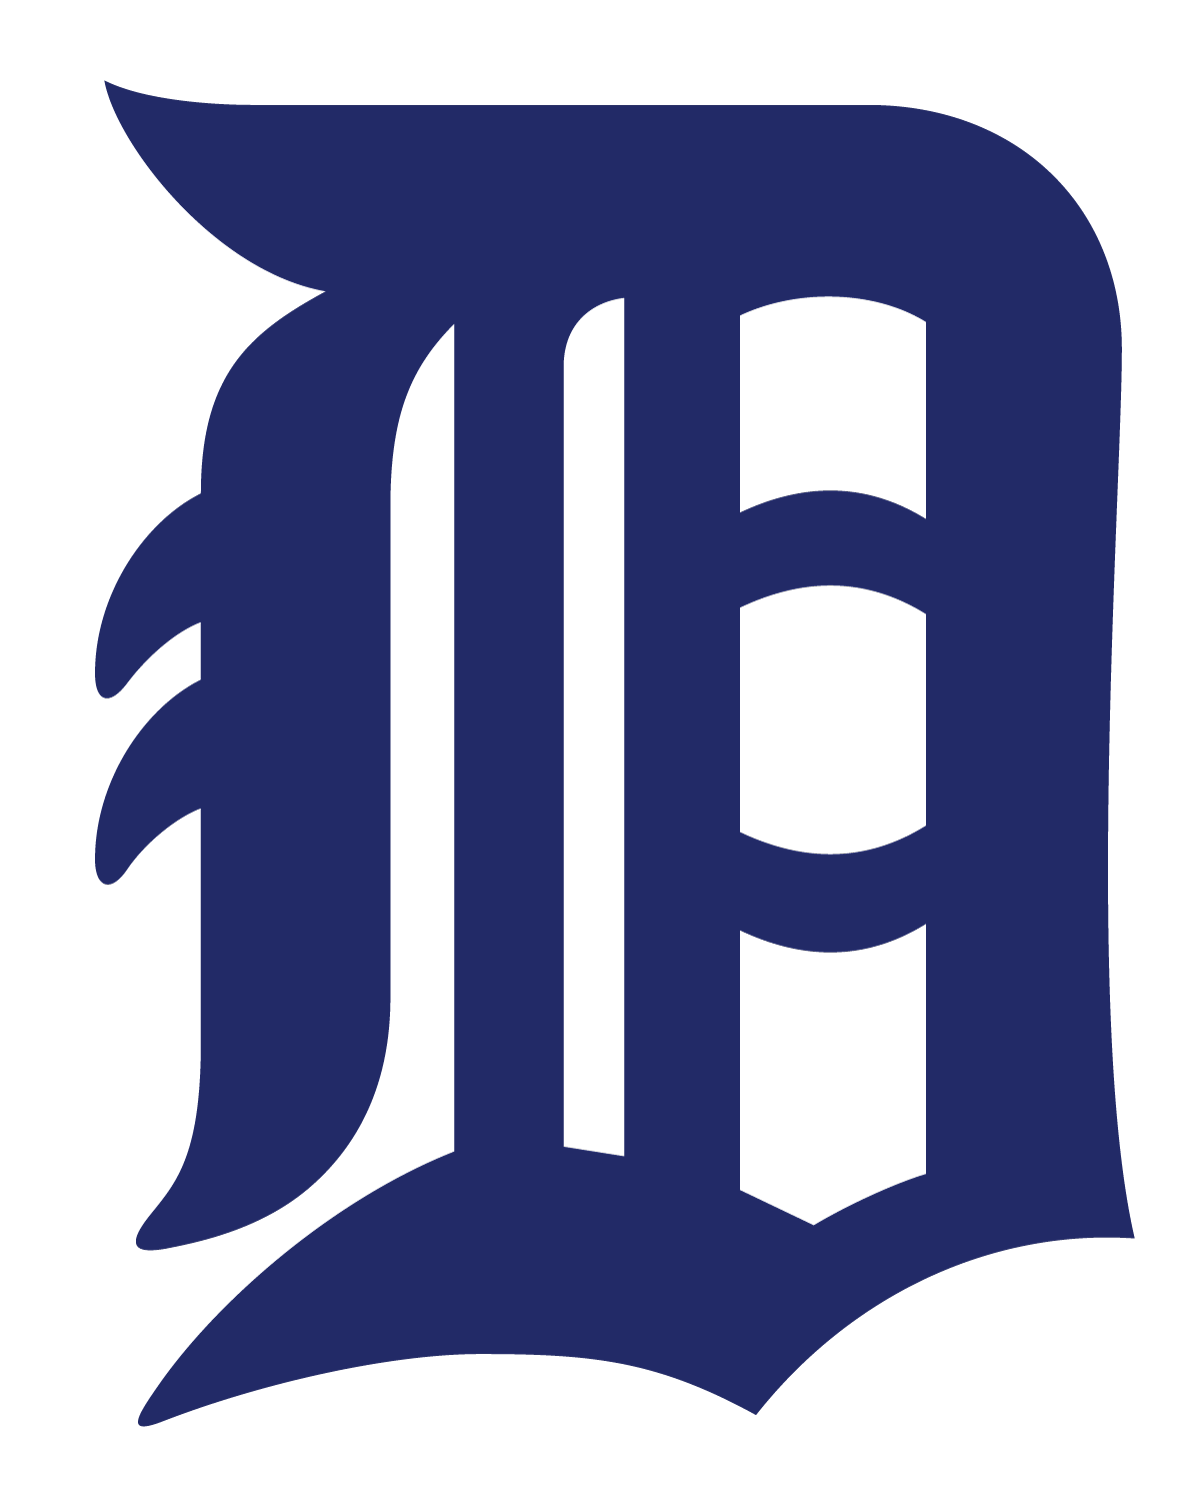 Detroit tigers clipart free banner freeuse download Free Detroit Tigers Logo Png, Download Free Clip Art, Free Clip Art ... banner freeuse download